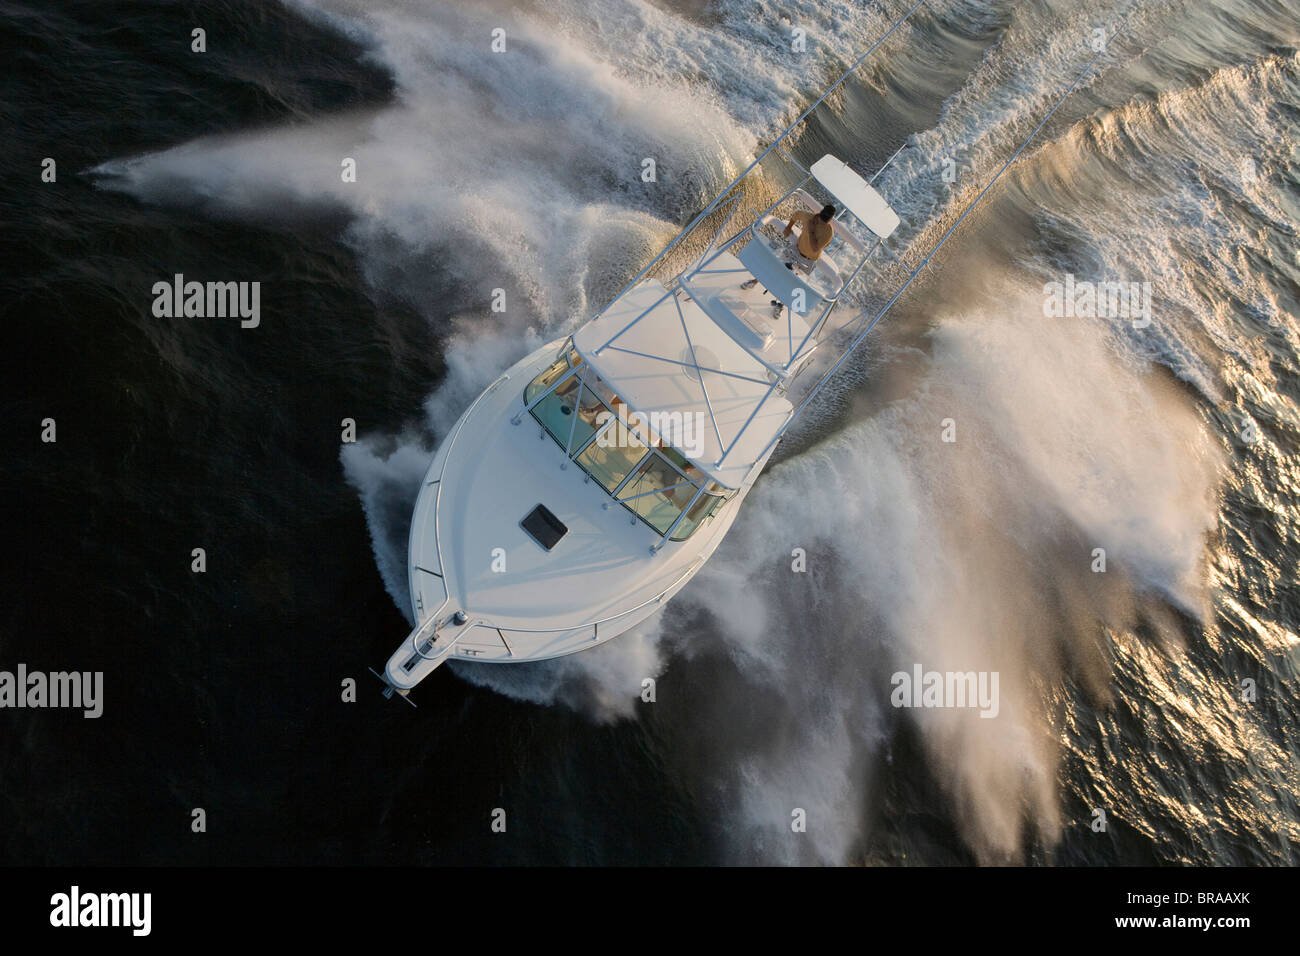 Man steering a sportfisher boat from the tuna tower.  Model and property released. - Stock Image